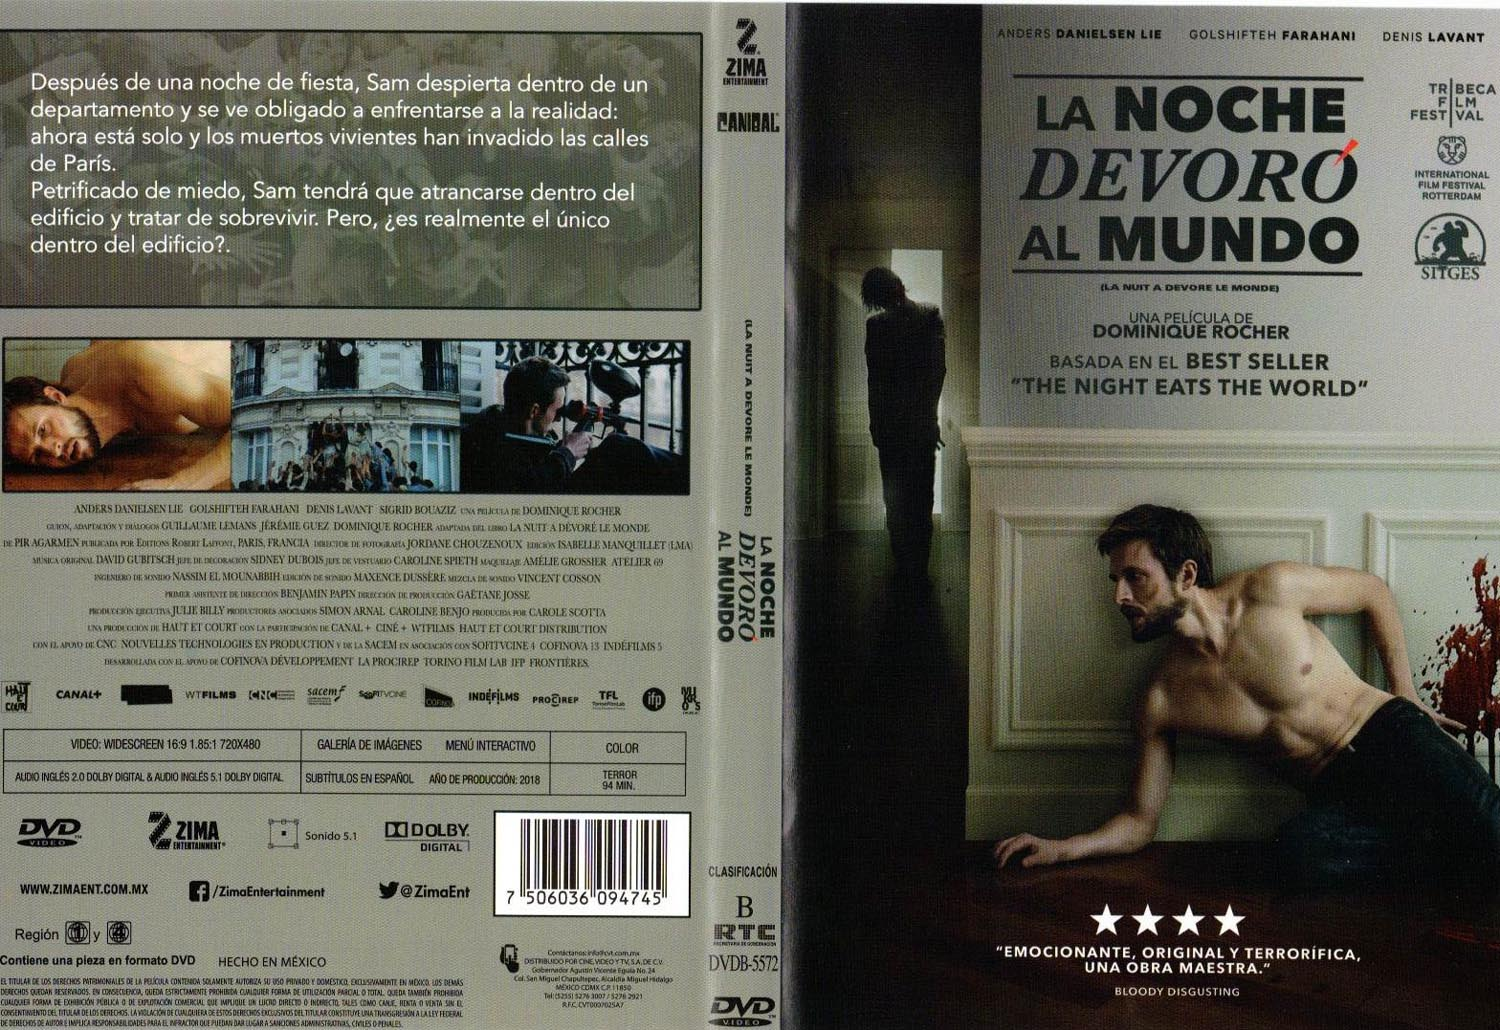 Description La Noche Devoro Al Mundo Dvd